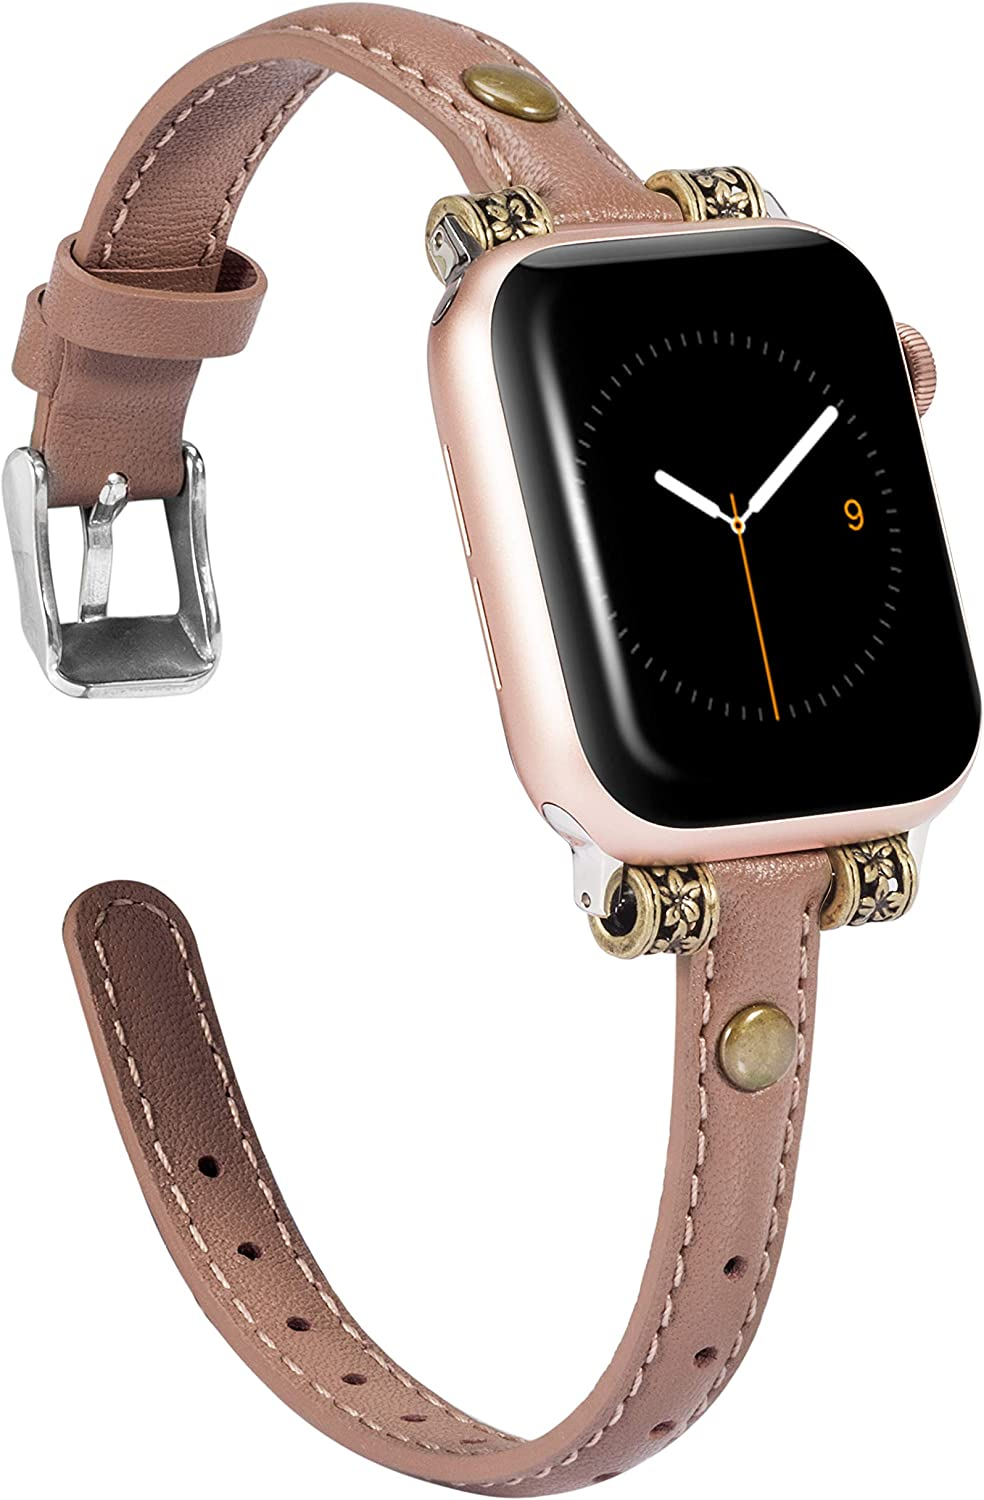 Wearlizer Leather Bands Compatible with Apple Watch Band 42mm 44mm for iWatch Womens Mens Special Slim Vintage Wristband Replacement Strap SE Series 6 5 4 3 2 1 Edition - Tan